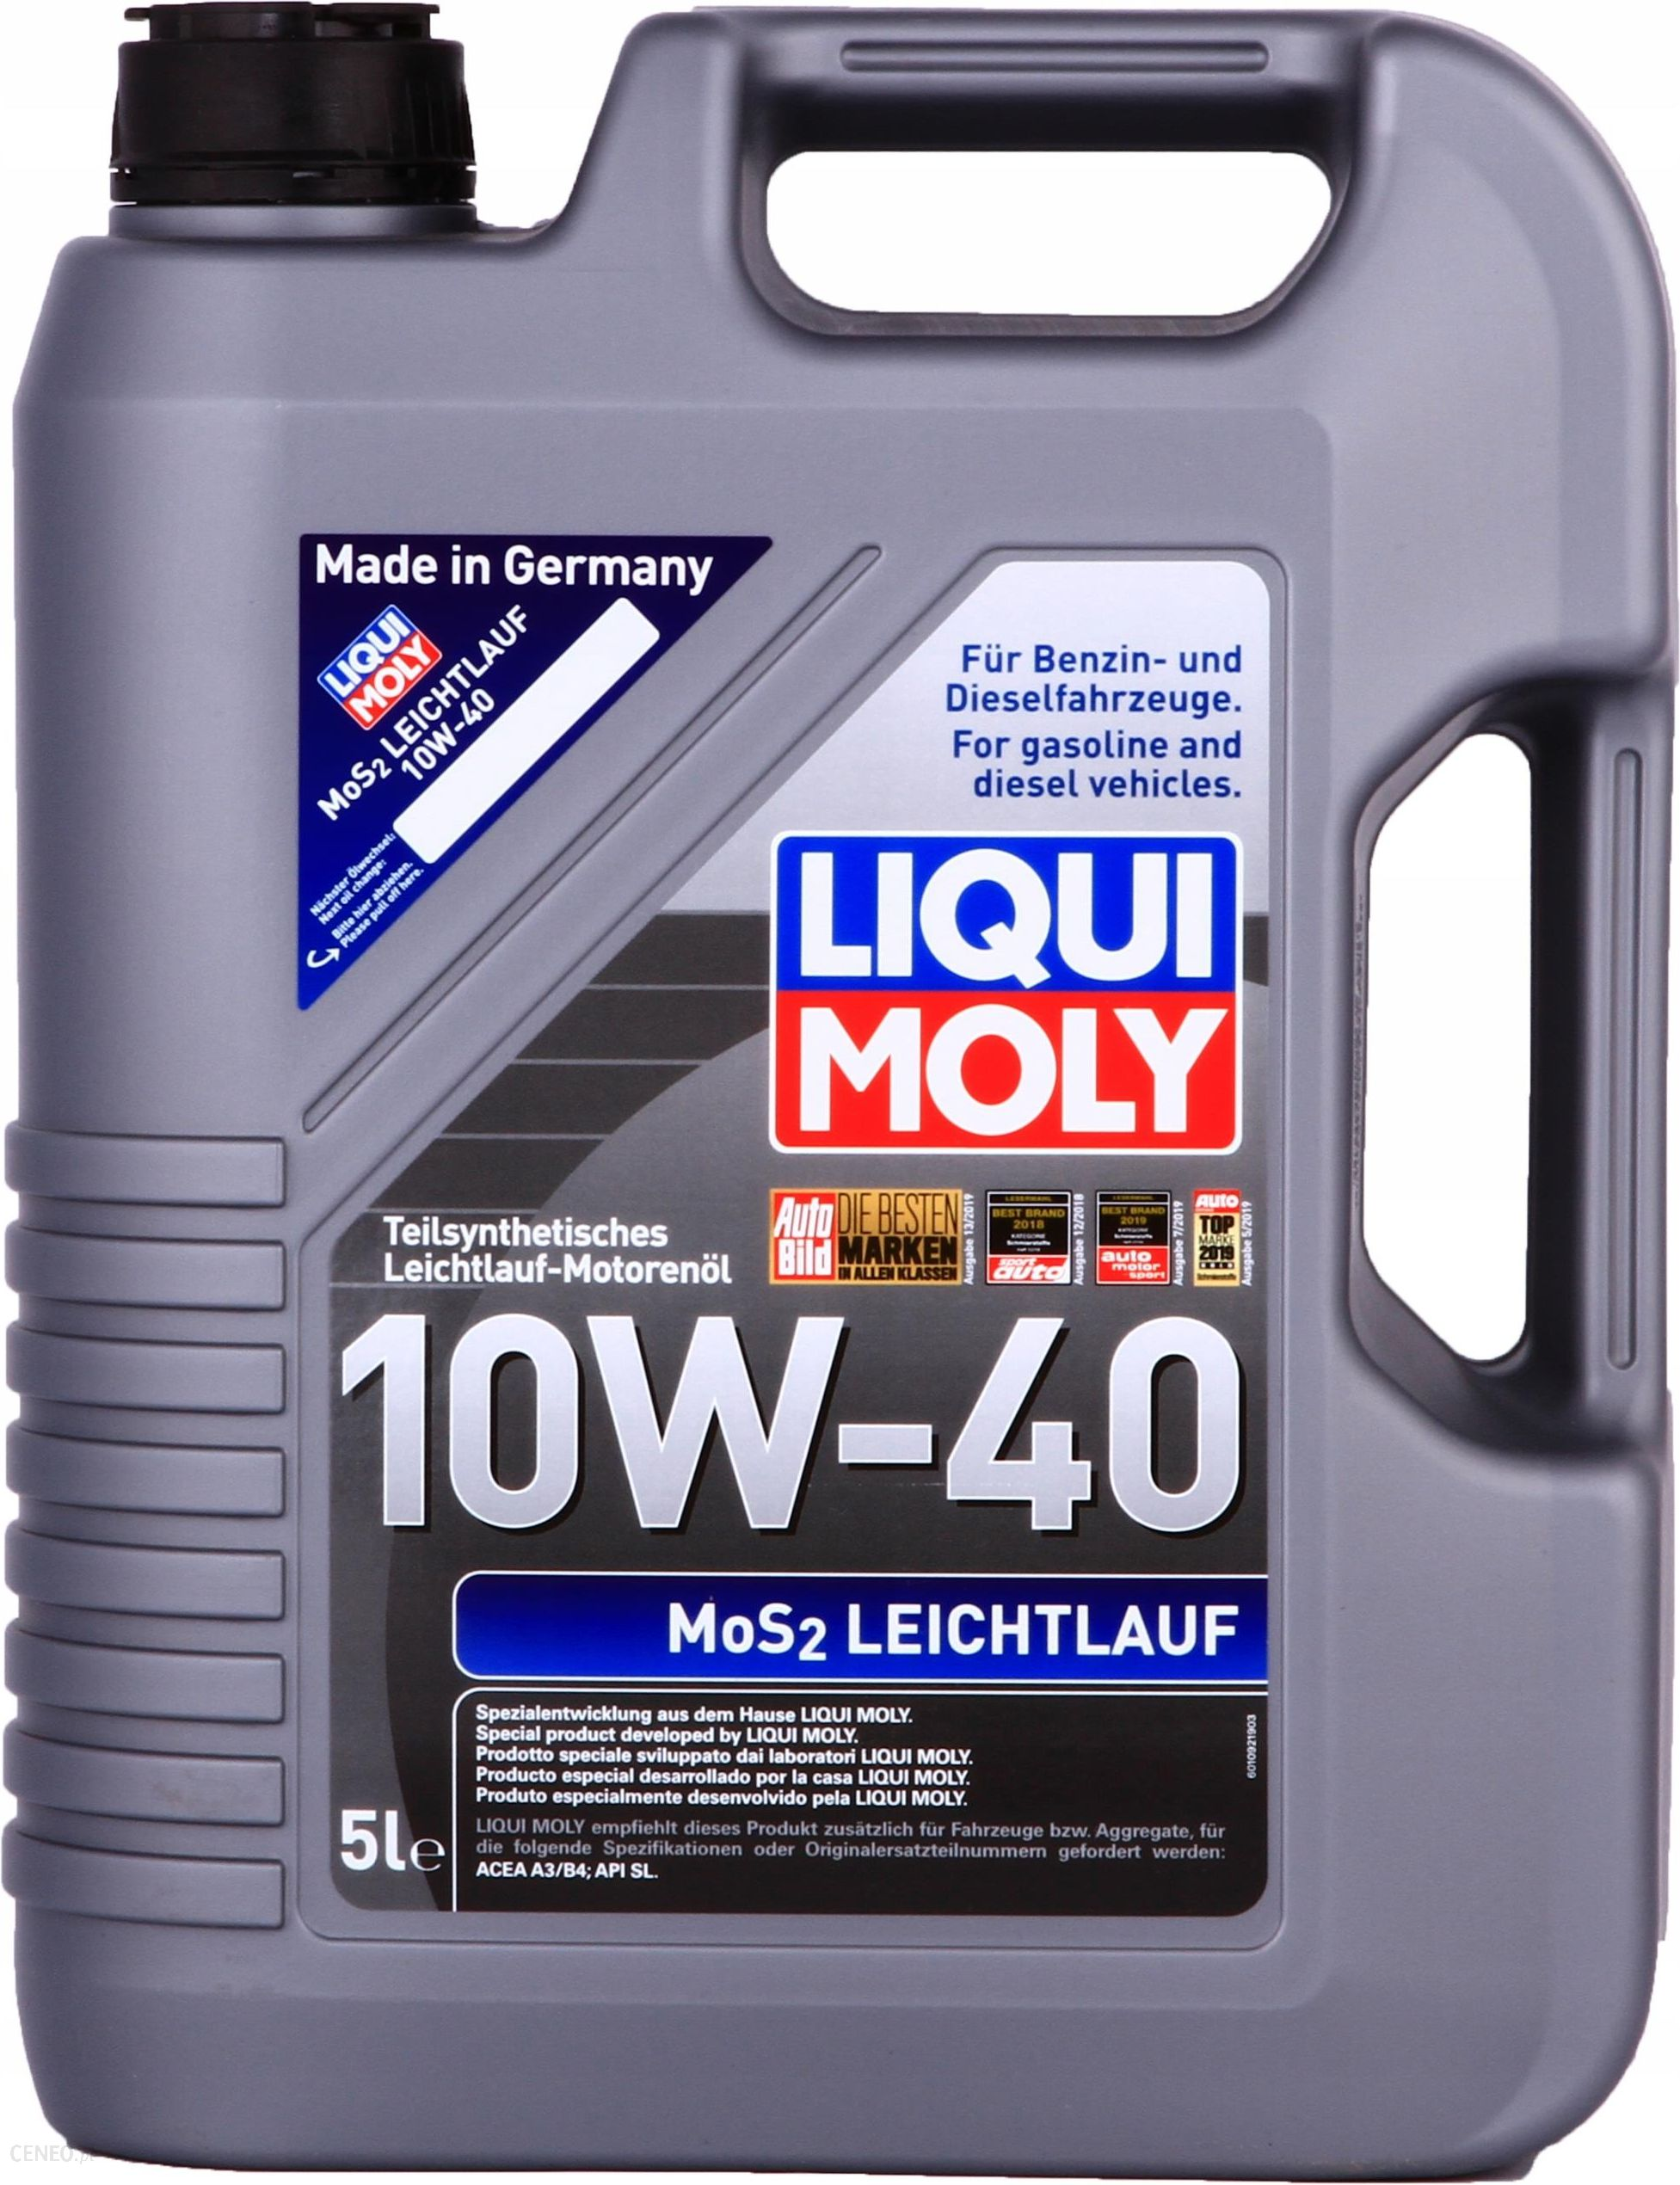 olej silnikowy liqui moly mos2 leichtlauf 10w40 5l. Black Bedroom Furniture Sets. Home Design Ideas